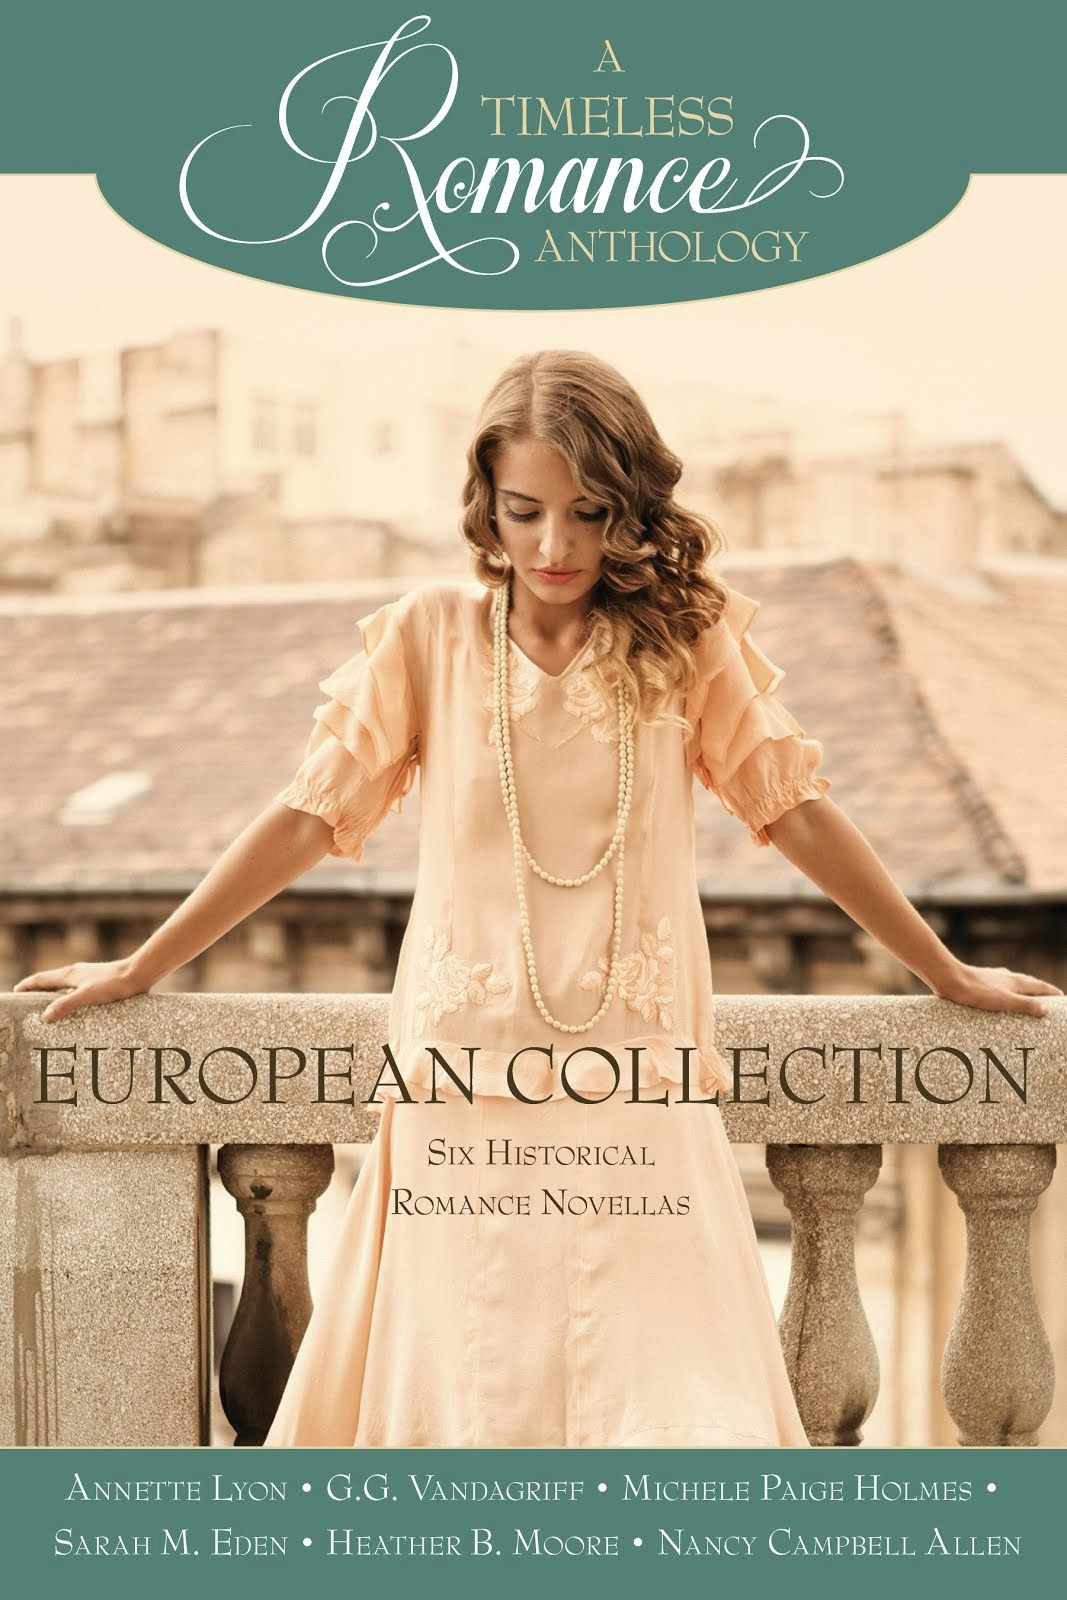 Newest Release! European Collection